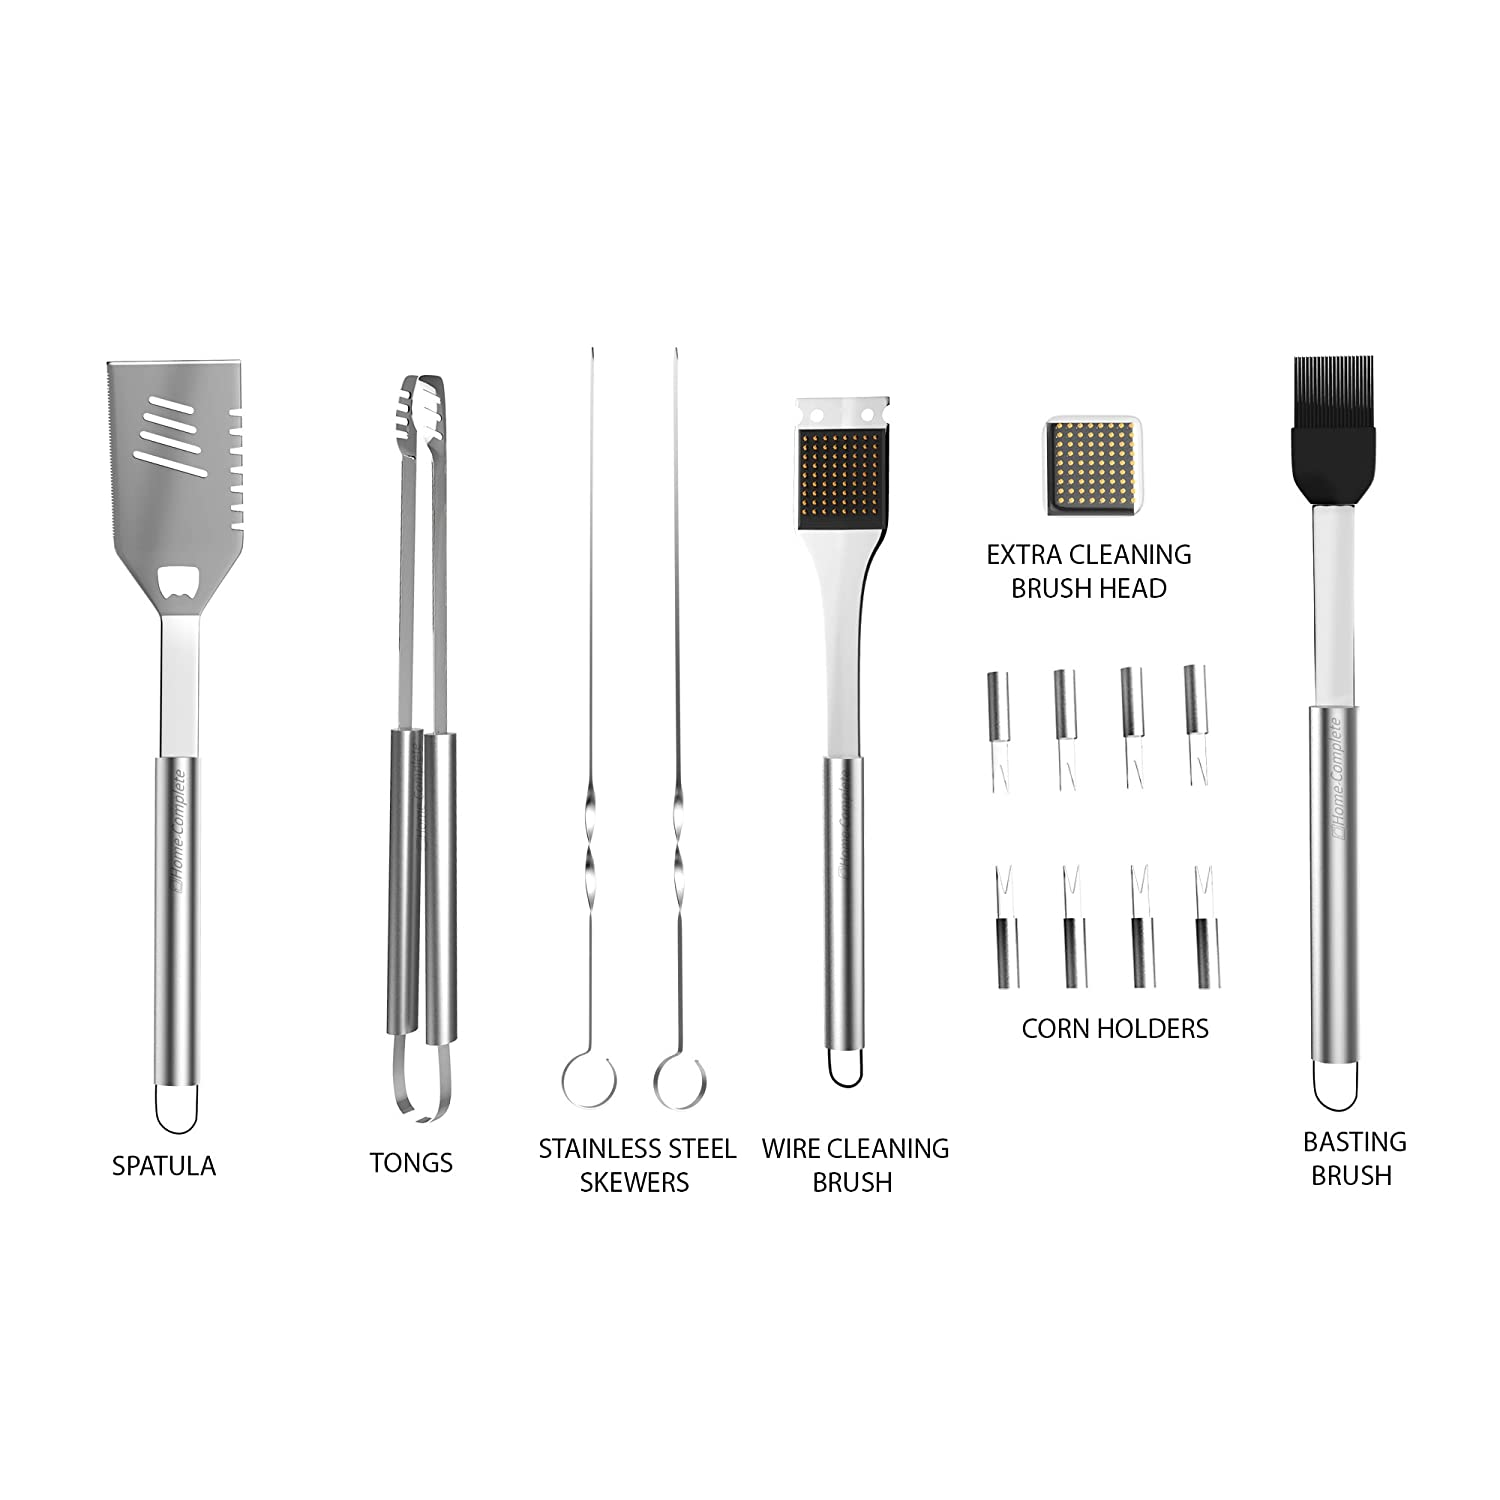 bbq grill tools set with 16 barbecue accessories